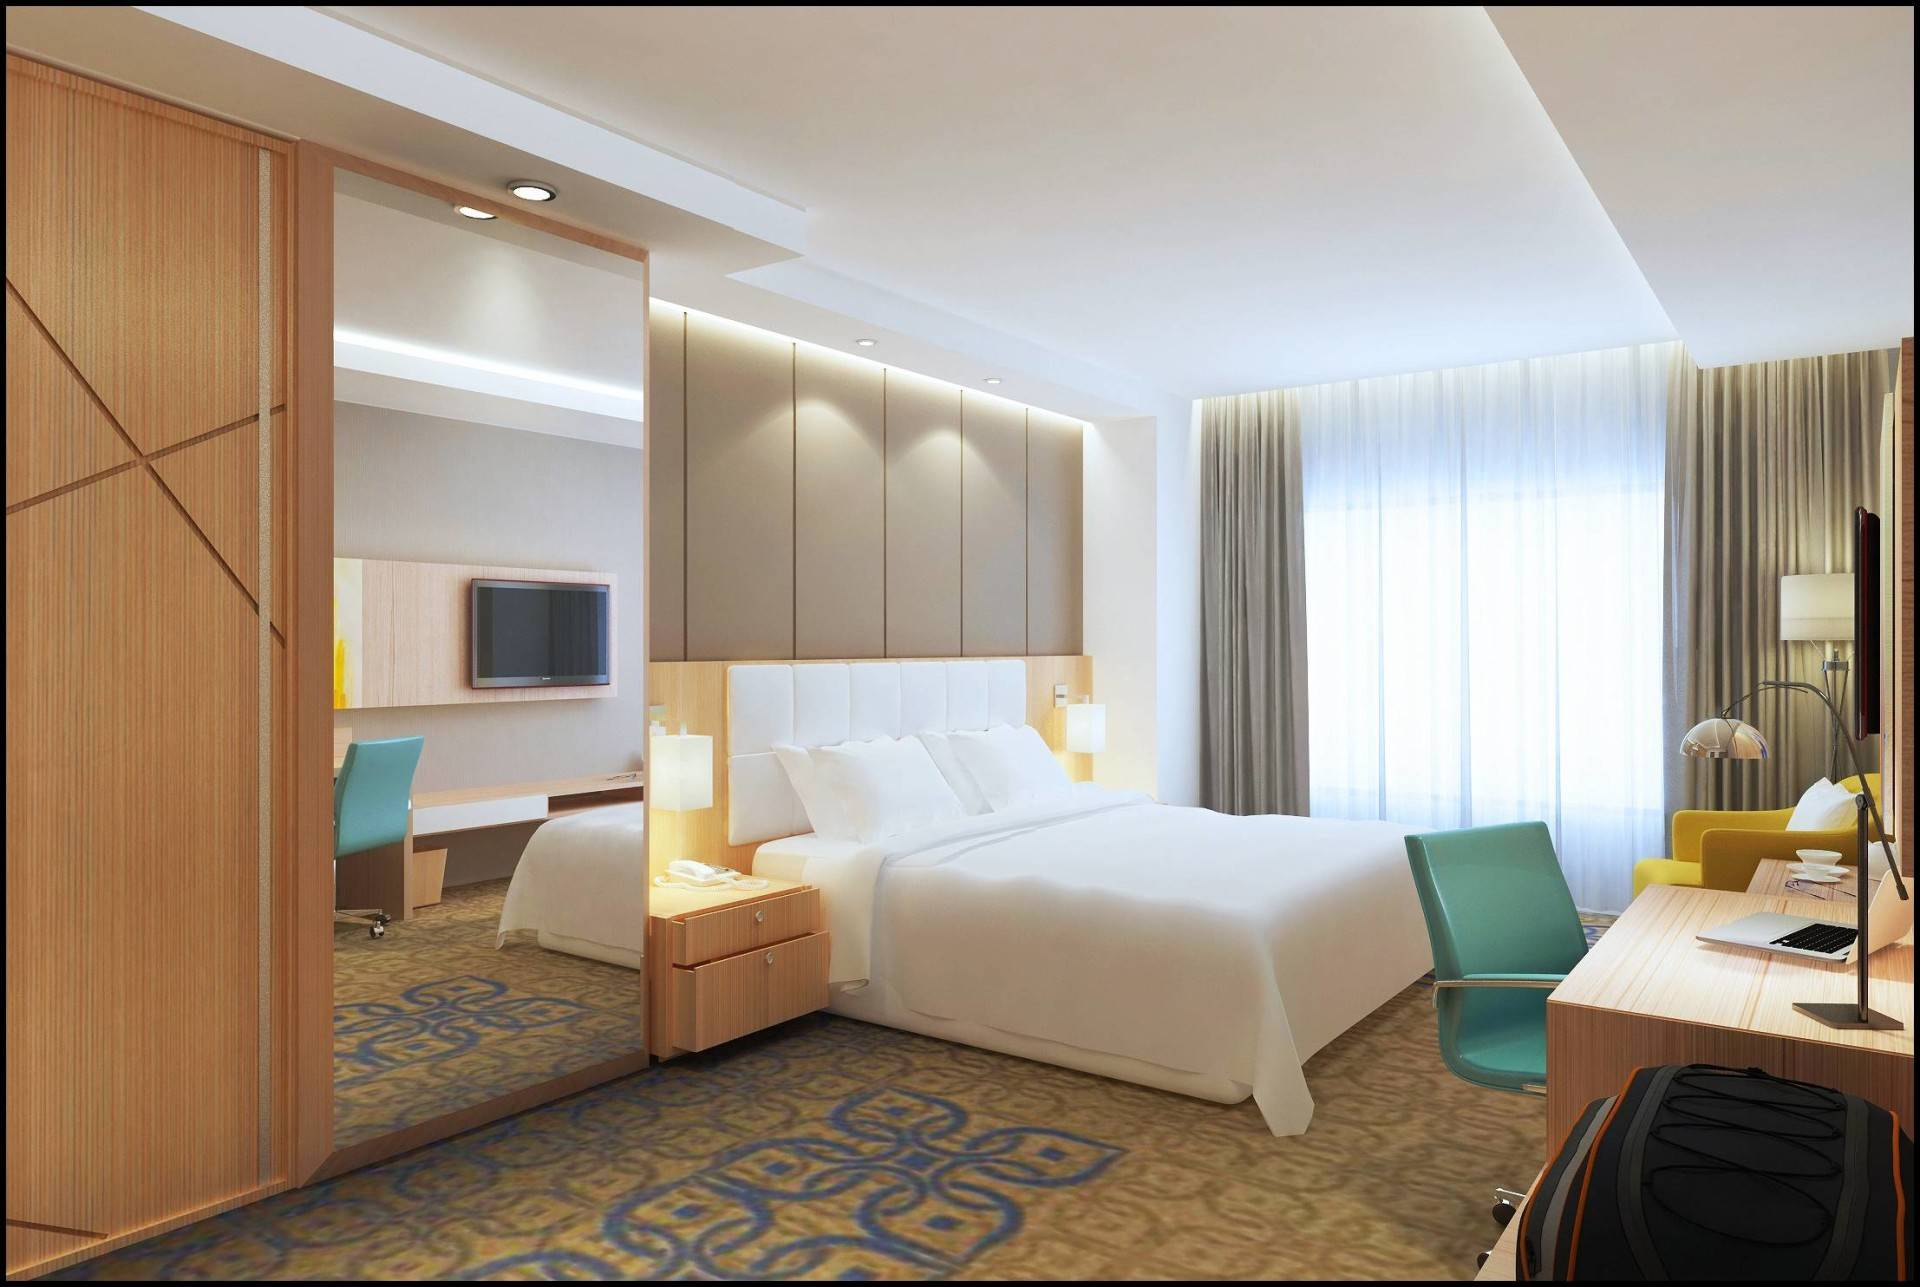 Miv Architects (Ar. Muhammad Ikhsan Hamiru, Iai & Partners) Interior Of Four Points Hotel By Sheraton, Makassar (Rooms, Swimming Pool, Fitness Center) Makassar, Sulawesi Selatan, Indonesia Makassar, Sulawesi Selatan, Indonesia Junior Suite Room   4978